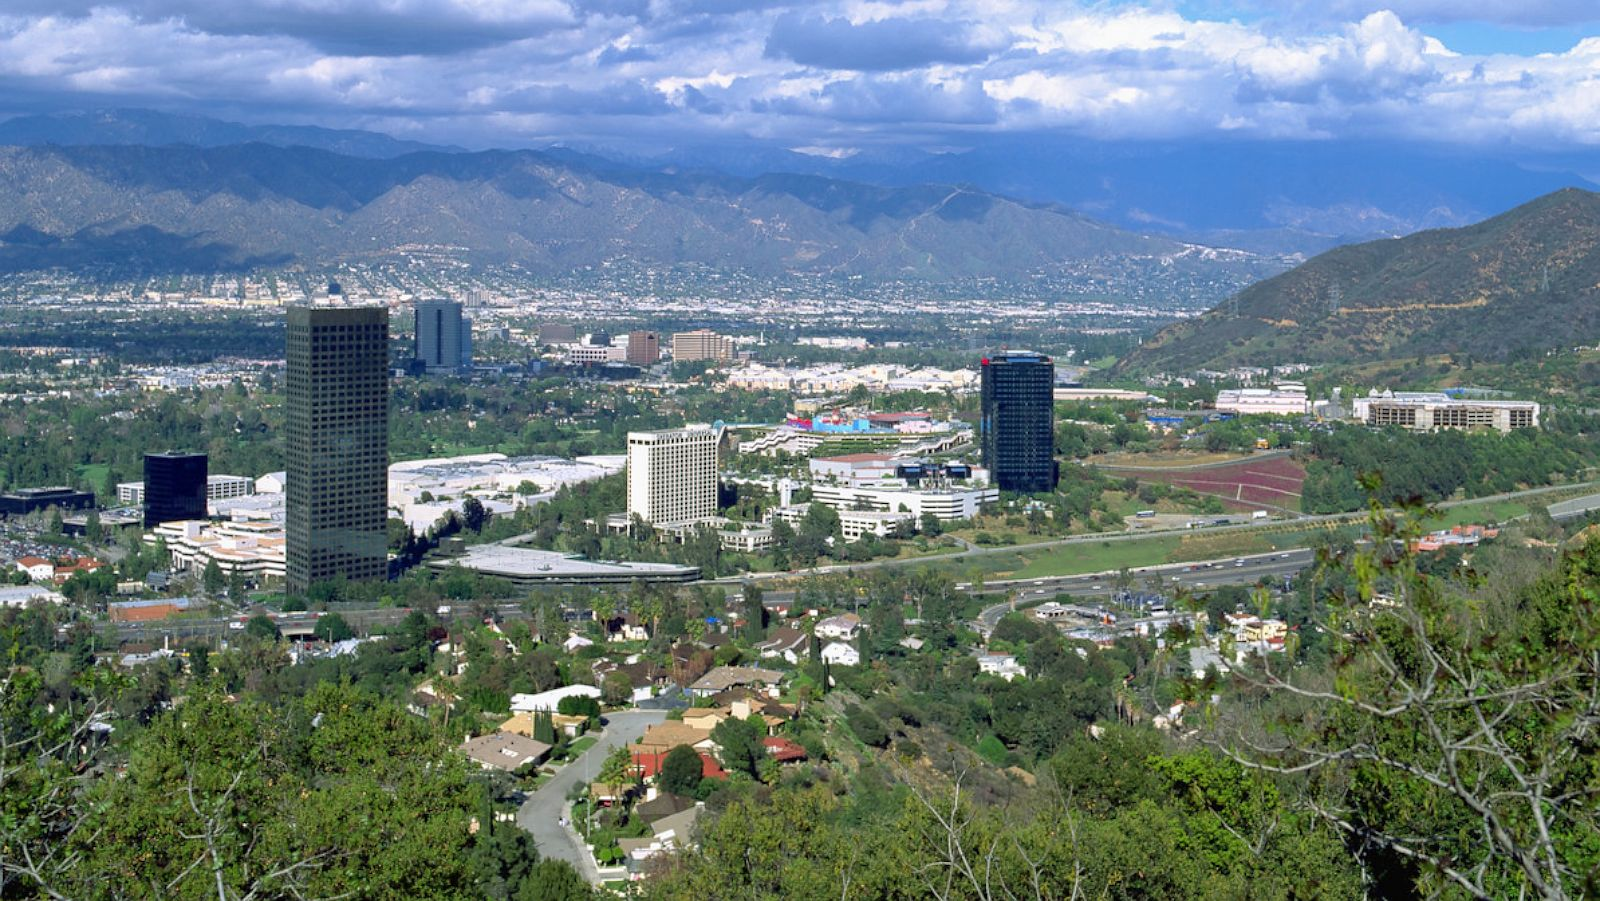 burbank, california: top visitor attractions, sights, things to do